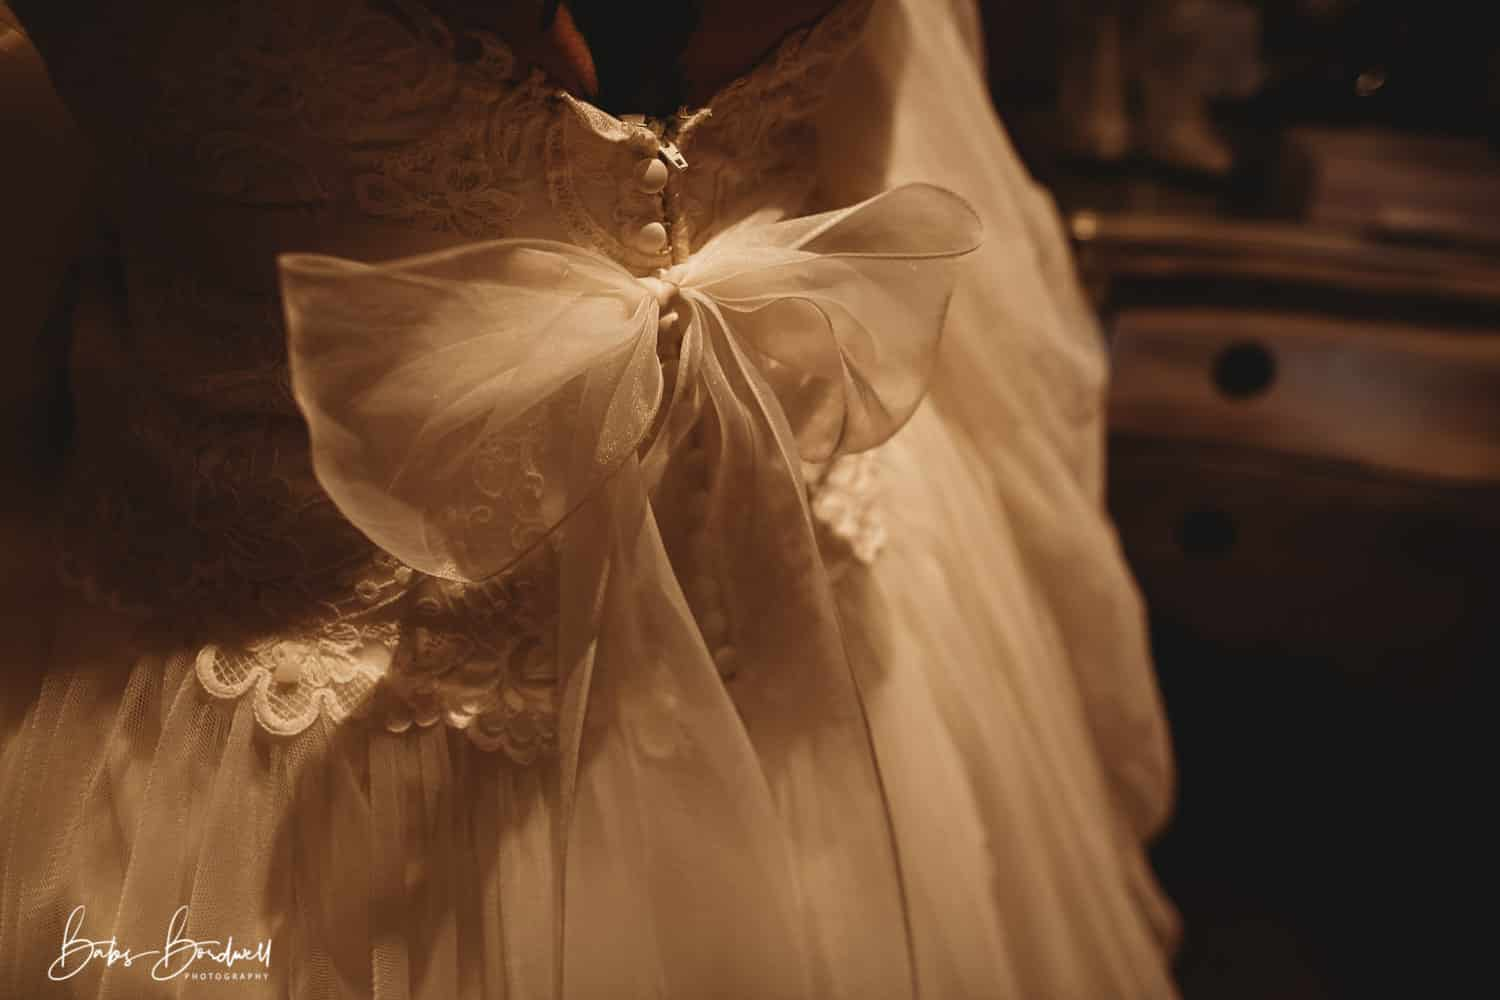 close-up of bow on bride's wedding dress